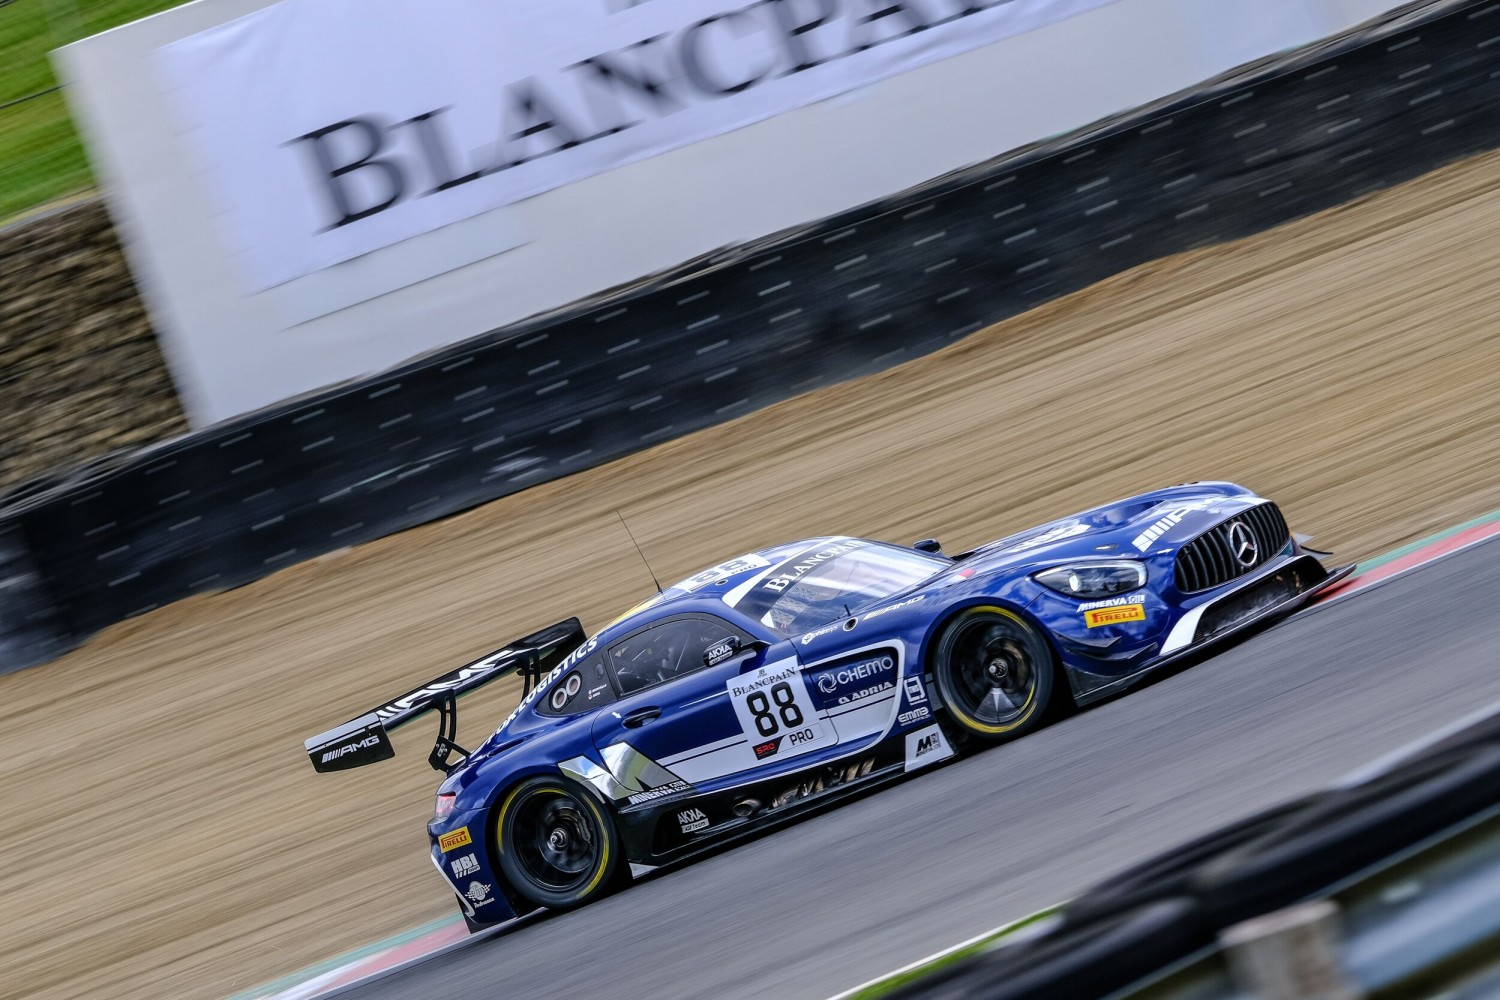 Marciello paces opening Blancpain GT World Challenge Europe practice for AKKA ASP Mercedes-AMG